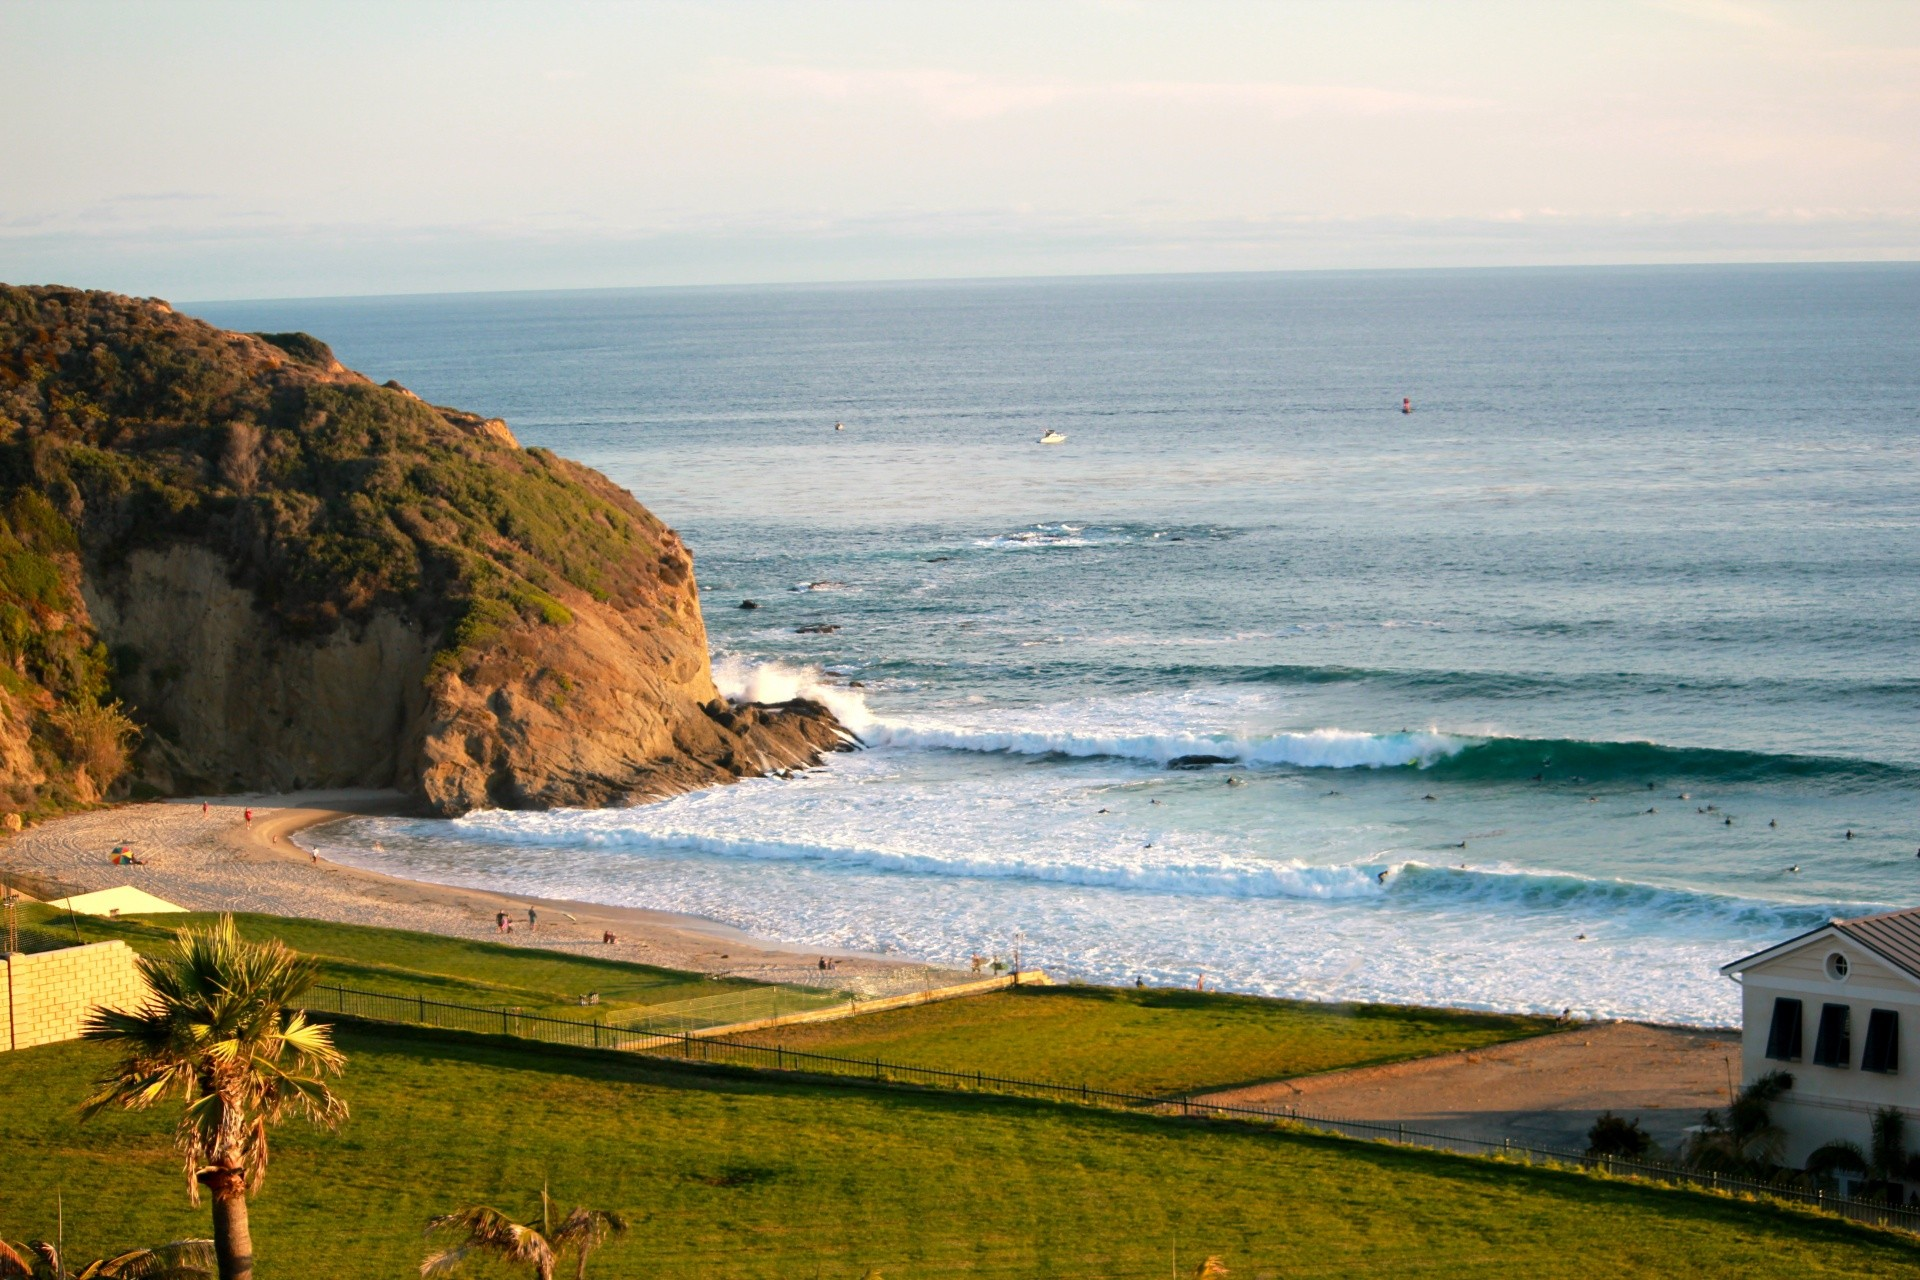 Tony's photo of Salt Creek